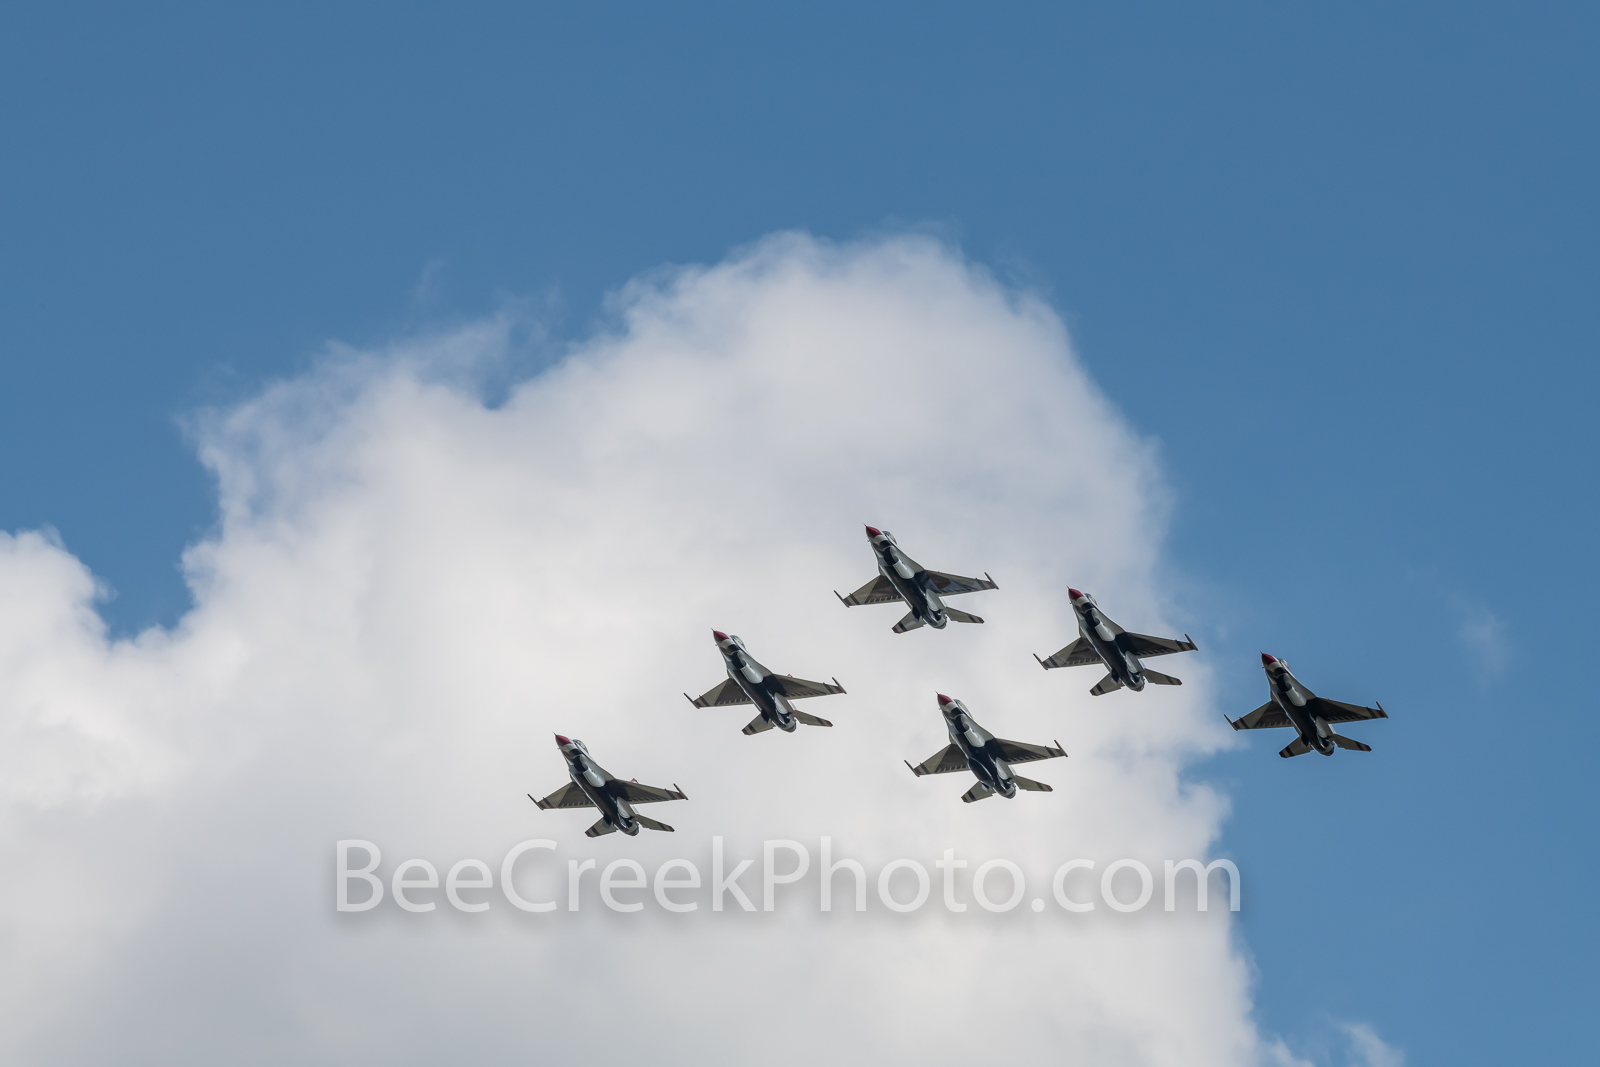 Thunderbirds, salute, nurses, hospitals, jets, plane, airforce, USA, f16, air force, us air force, military,